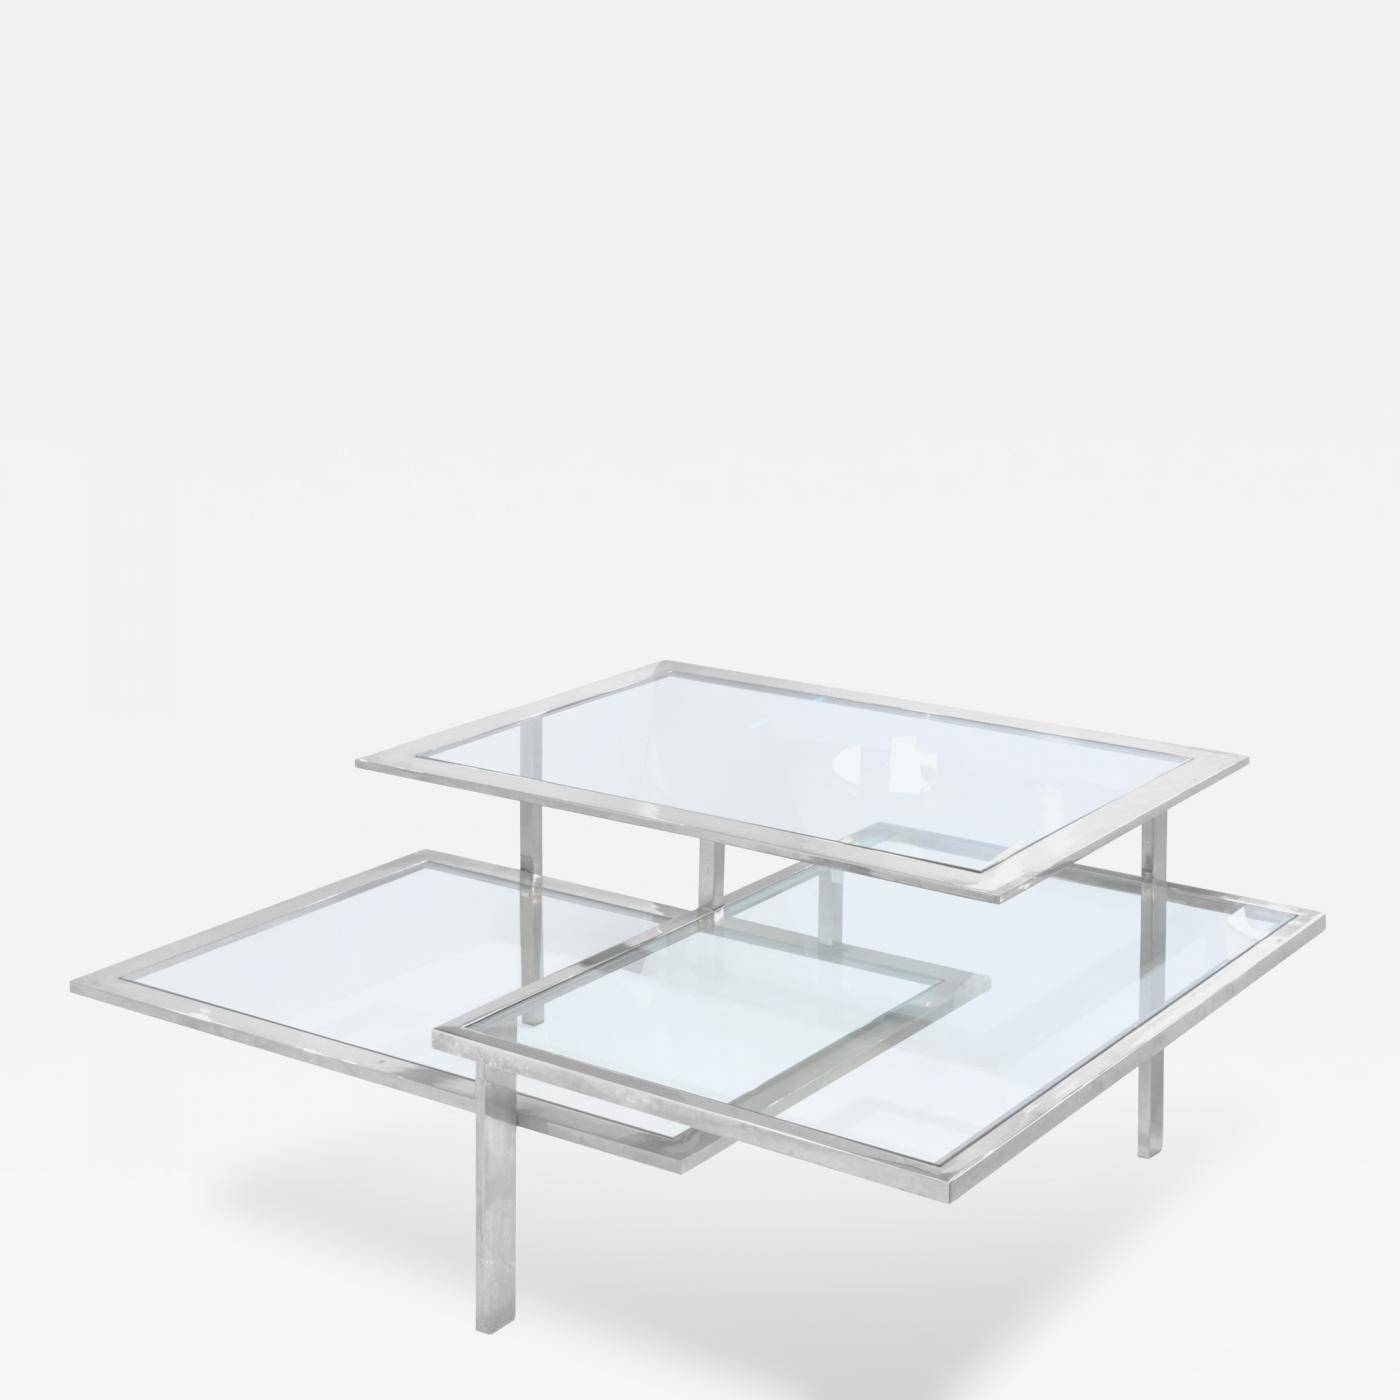 3 Level Chrome And Glass Coffee Table for Chrome And Glass Coffee Tables (Image 1 of 30)